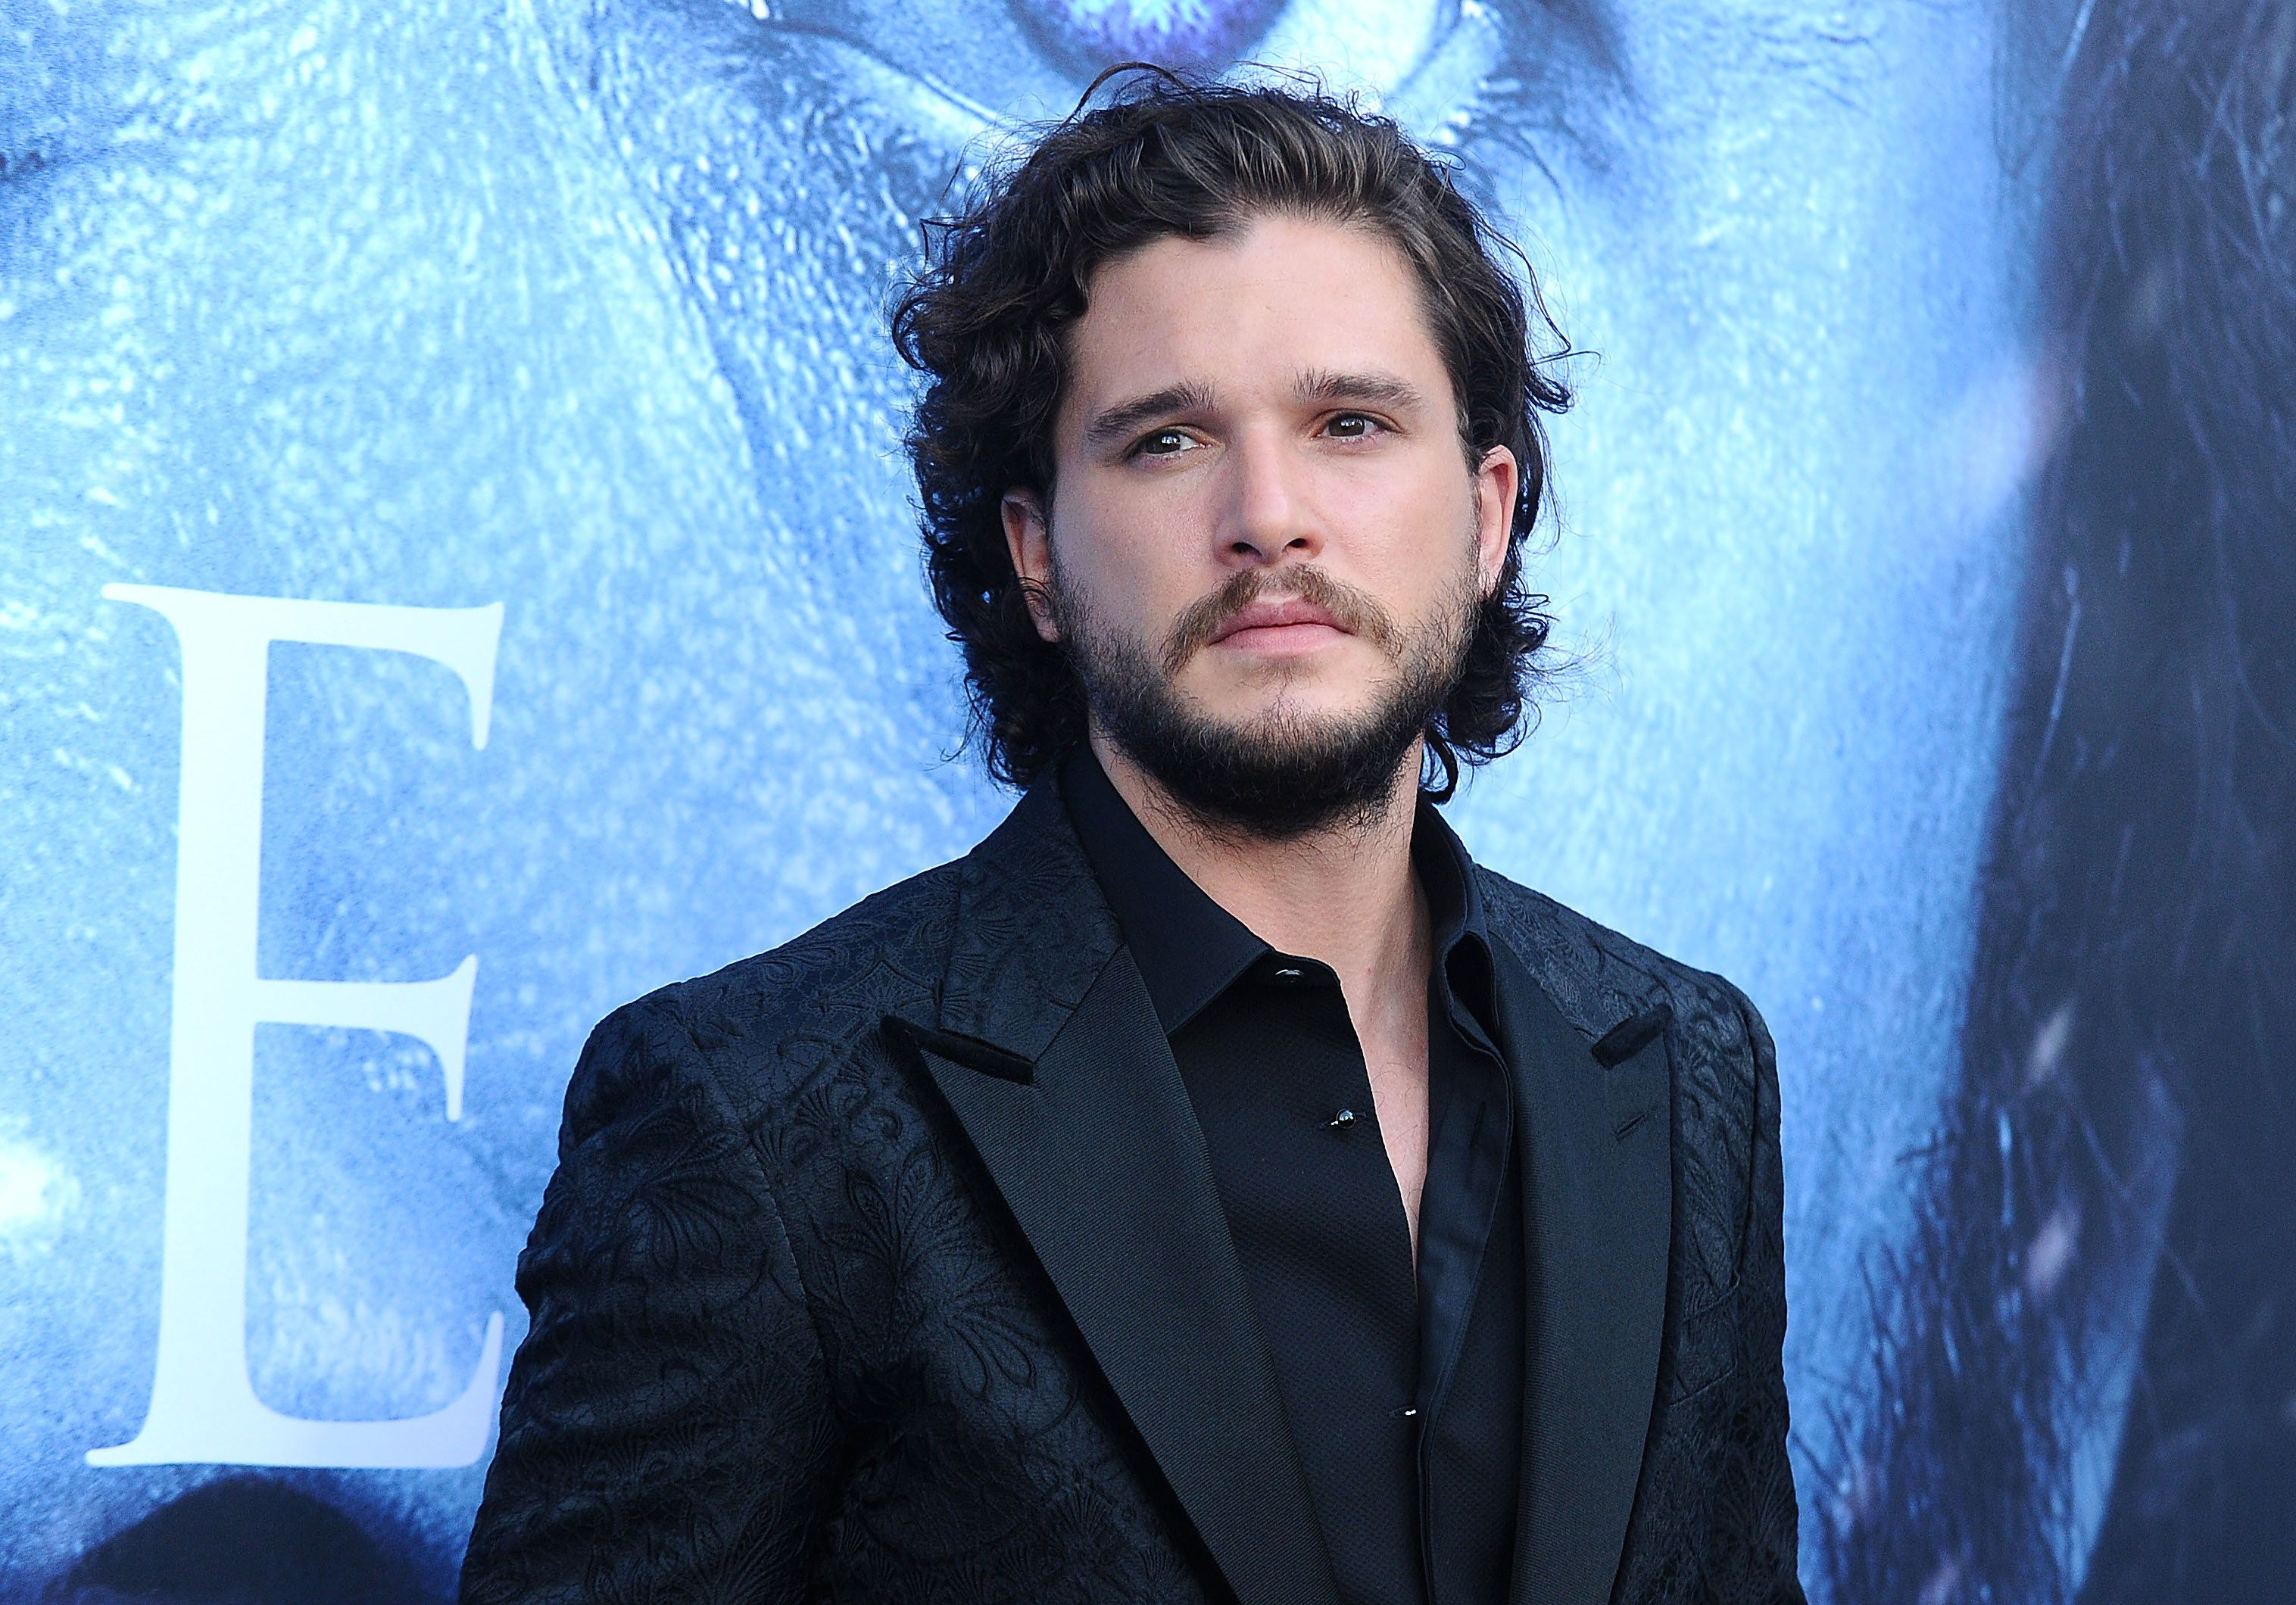 LOS ANGELES, CA - JULY 12:  Actor Kit Harington attends the season 7 premiere of 'Game Of Thrones' at Walt Disney Concert Hall on July 12, 2017 in Los Angeles, California.  (Photo by Jason LaVeris/FilmMagic)